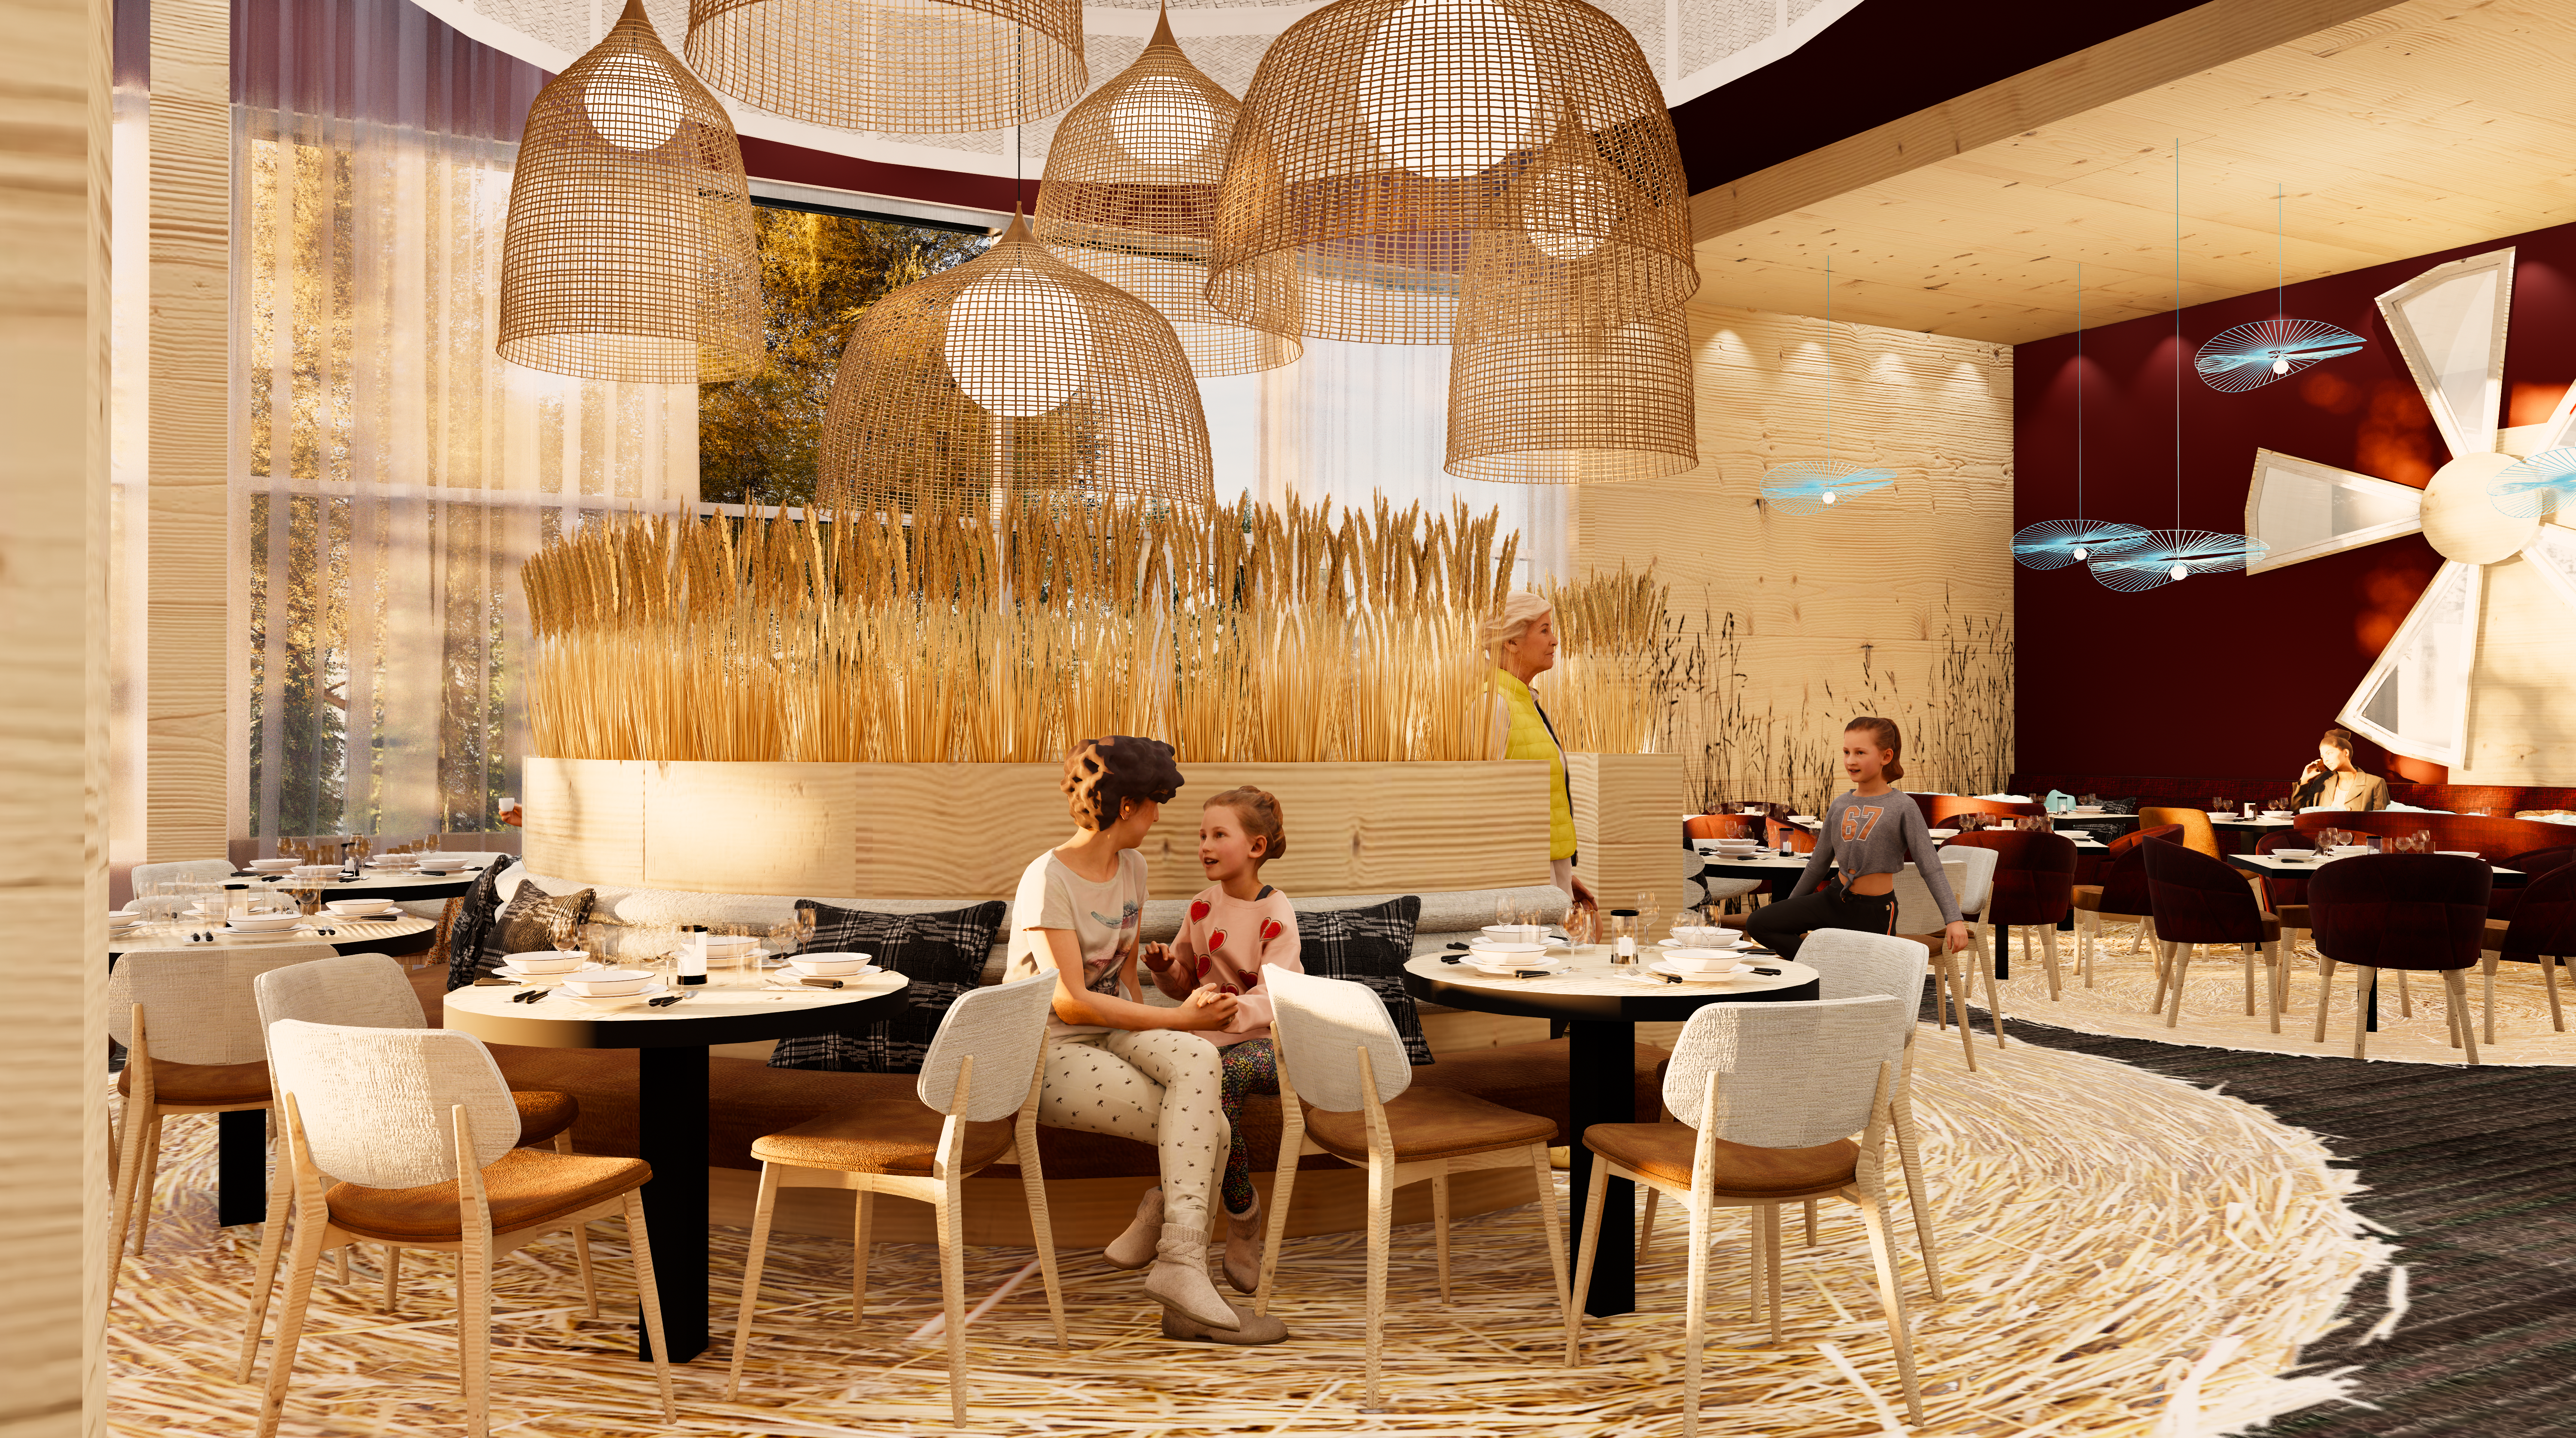 The different dining rooms will evoke the region's natural, maritime and agricultural heritage.